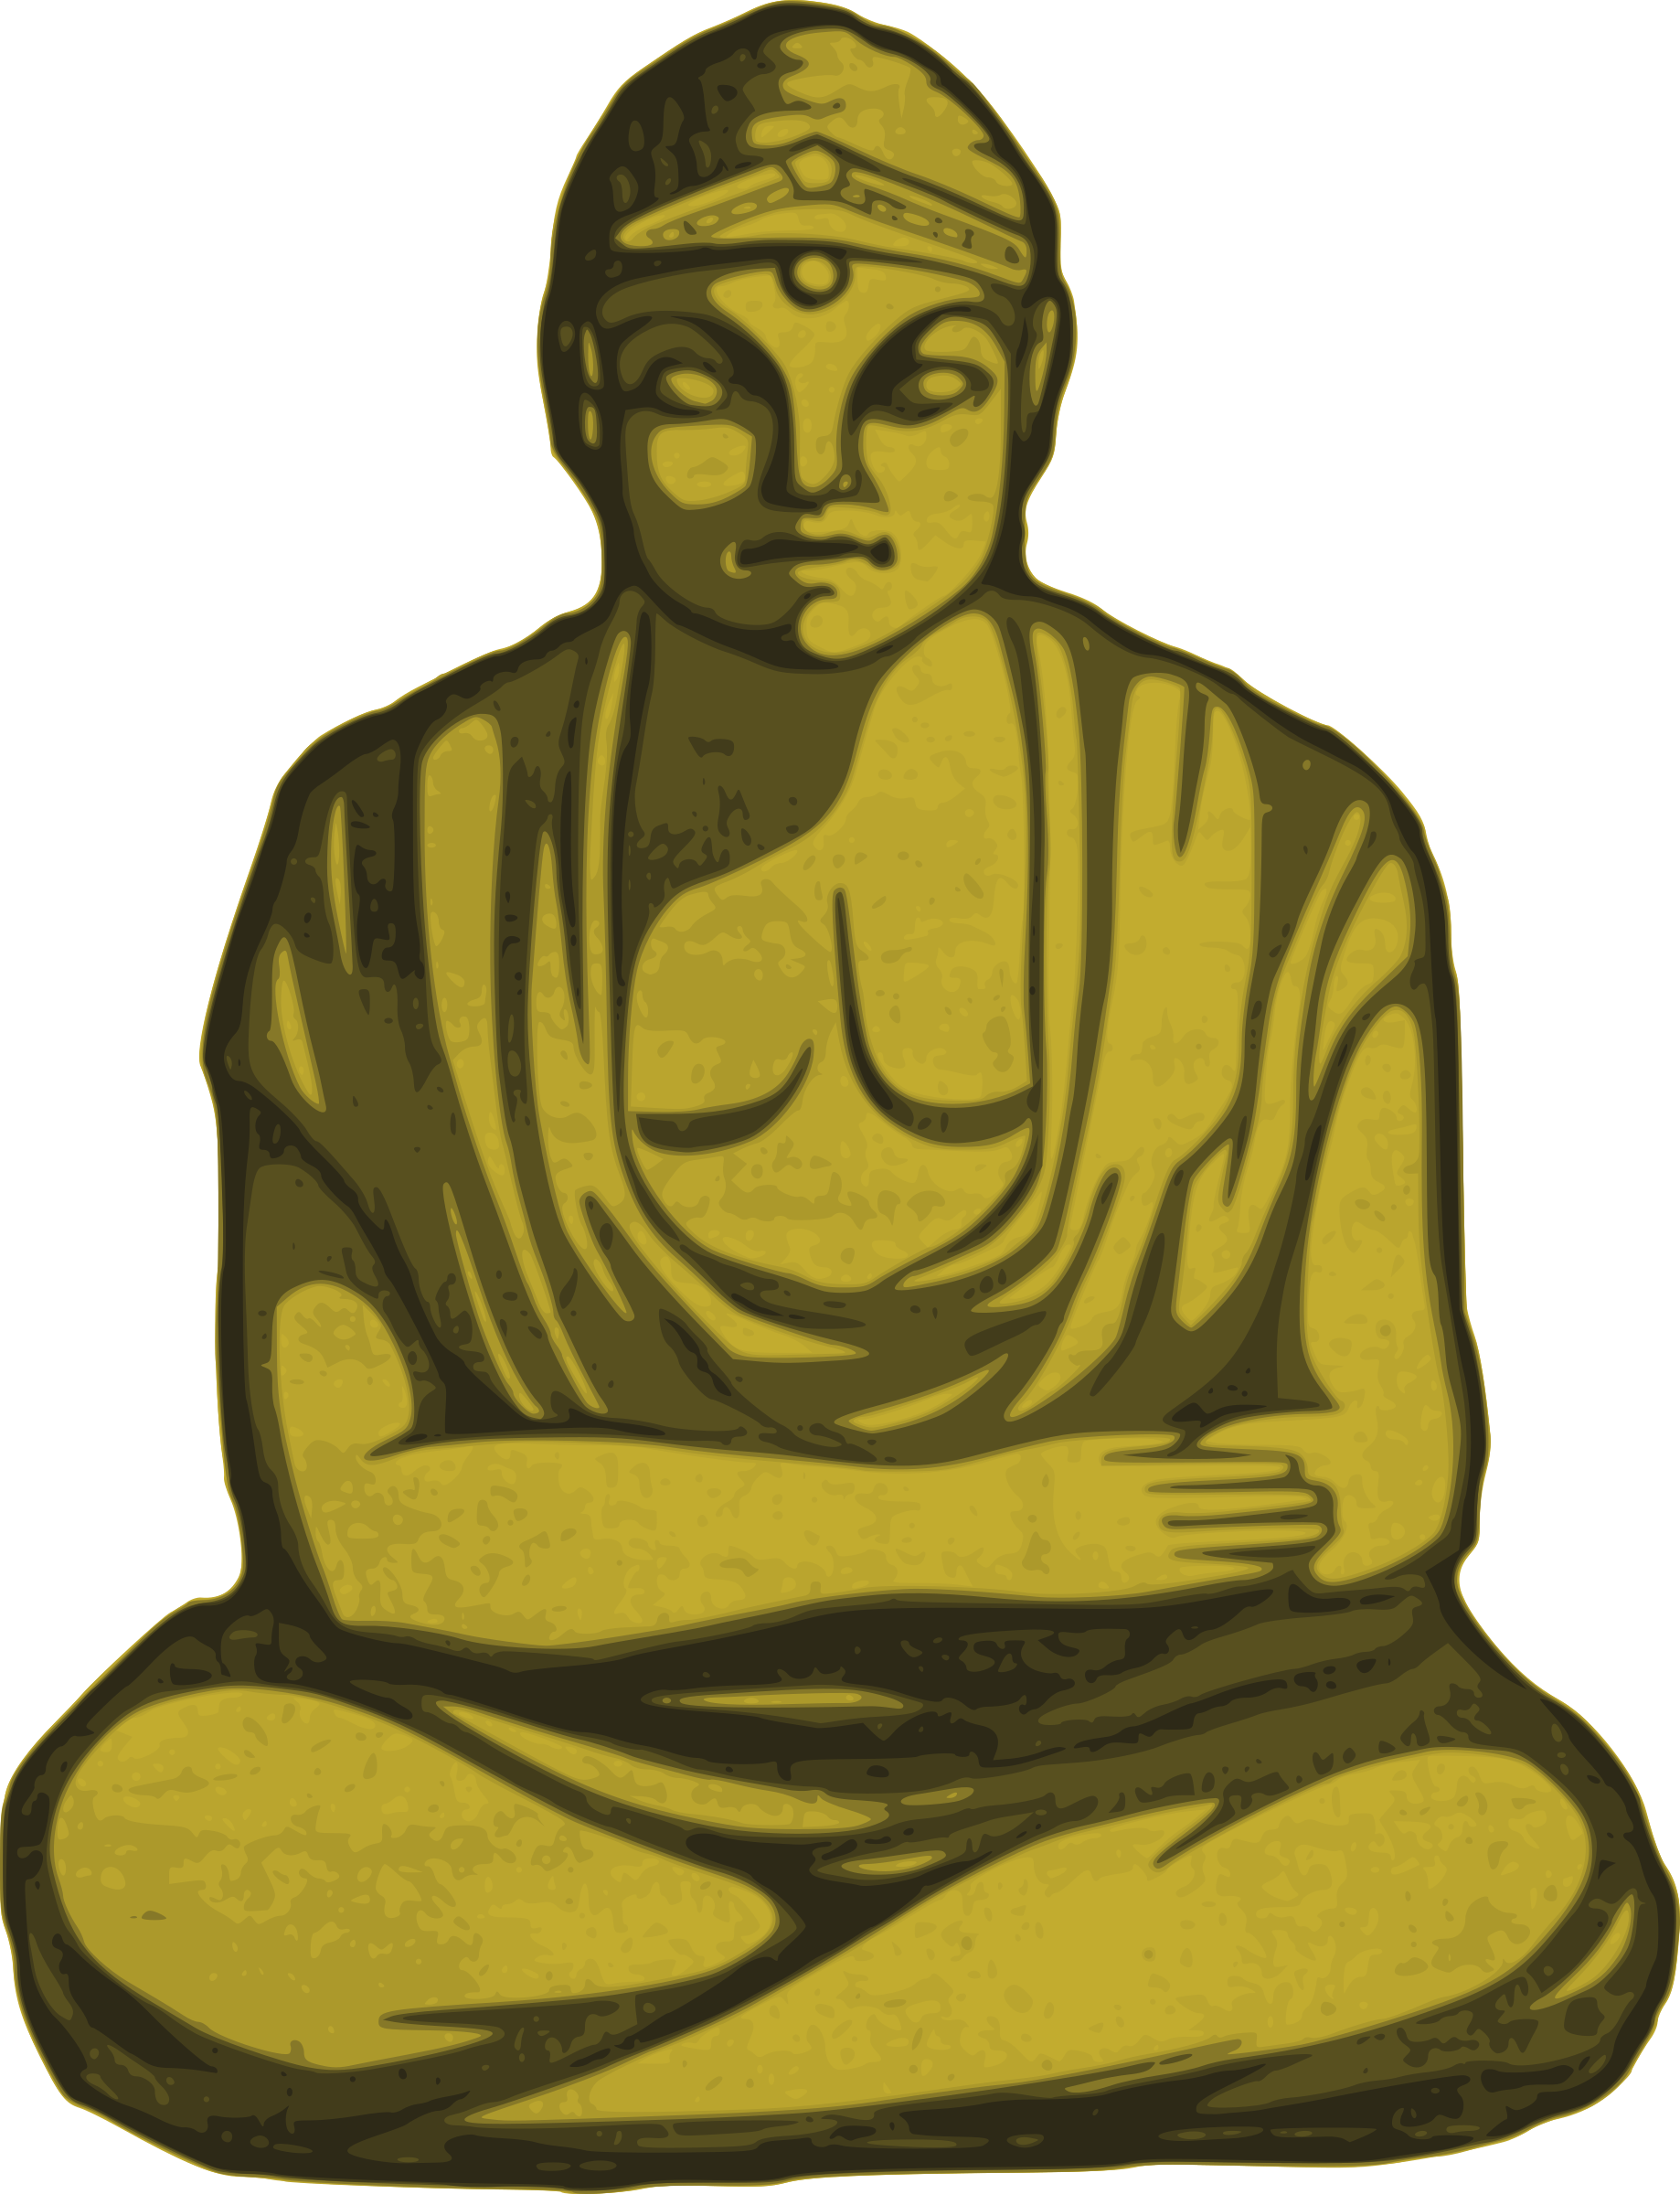 Golden big image png. Buddha clipart clear clip royalty free library